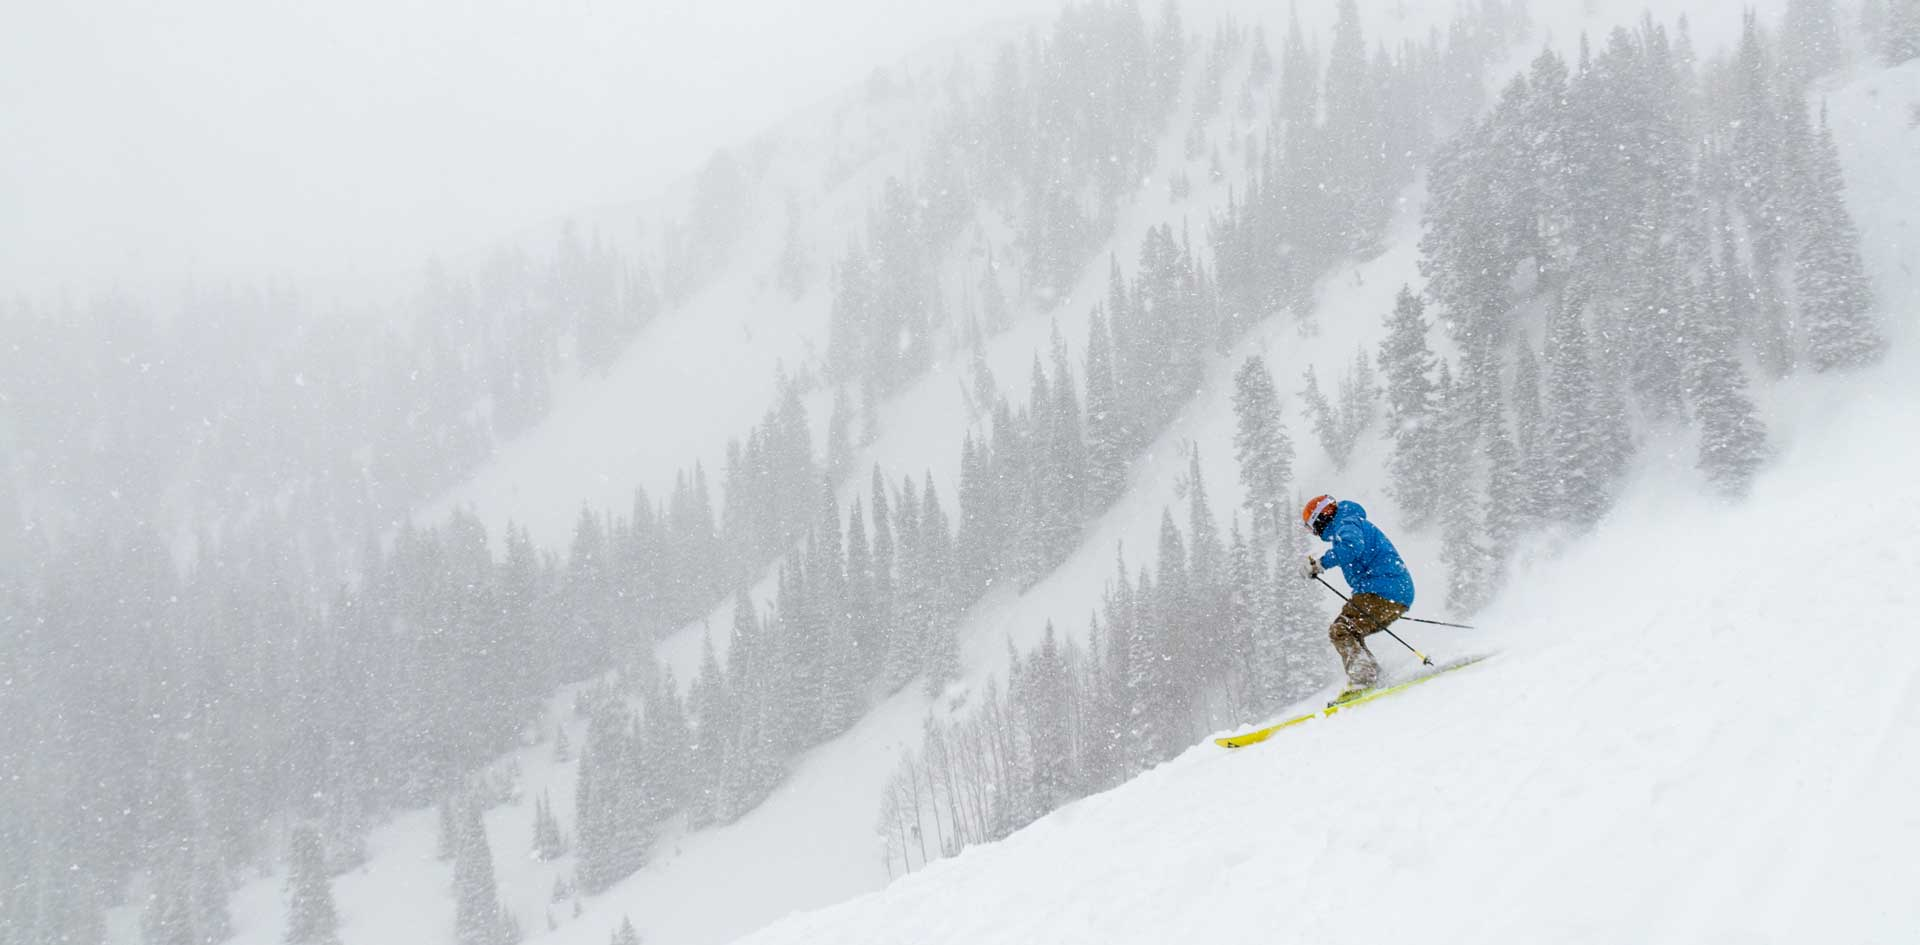 Andy Buckley Skiing in Deer Valley, UT